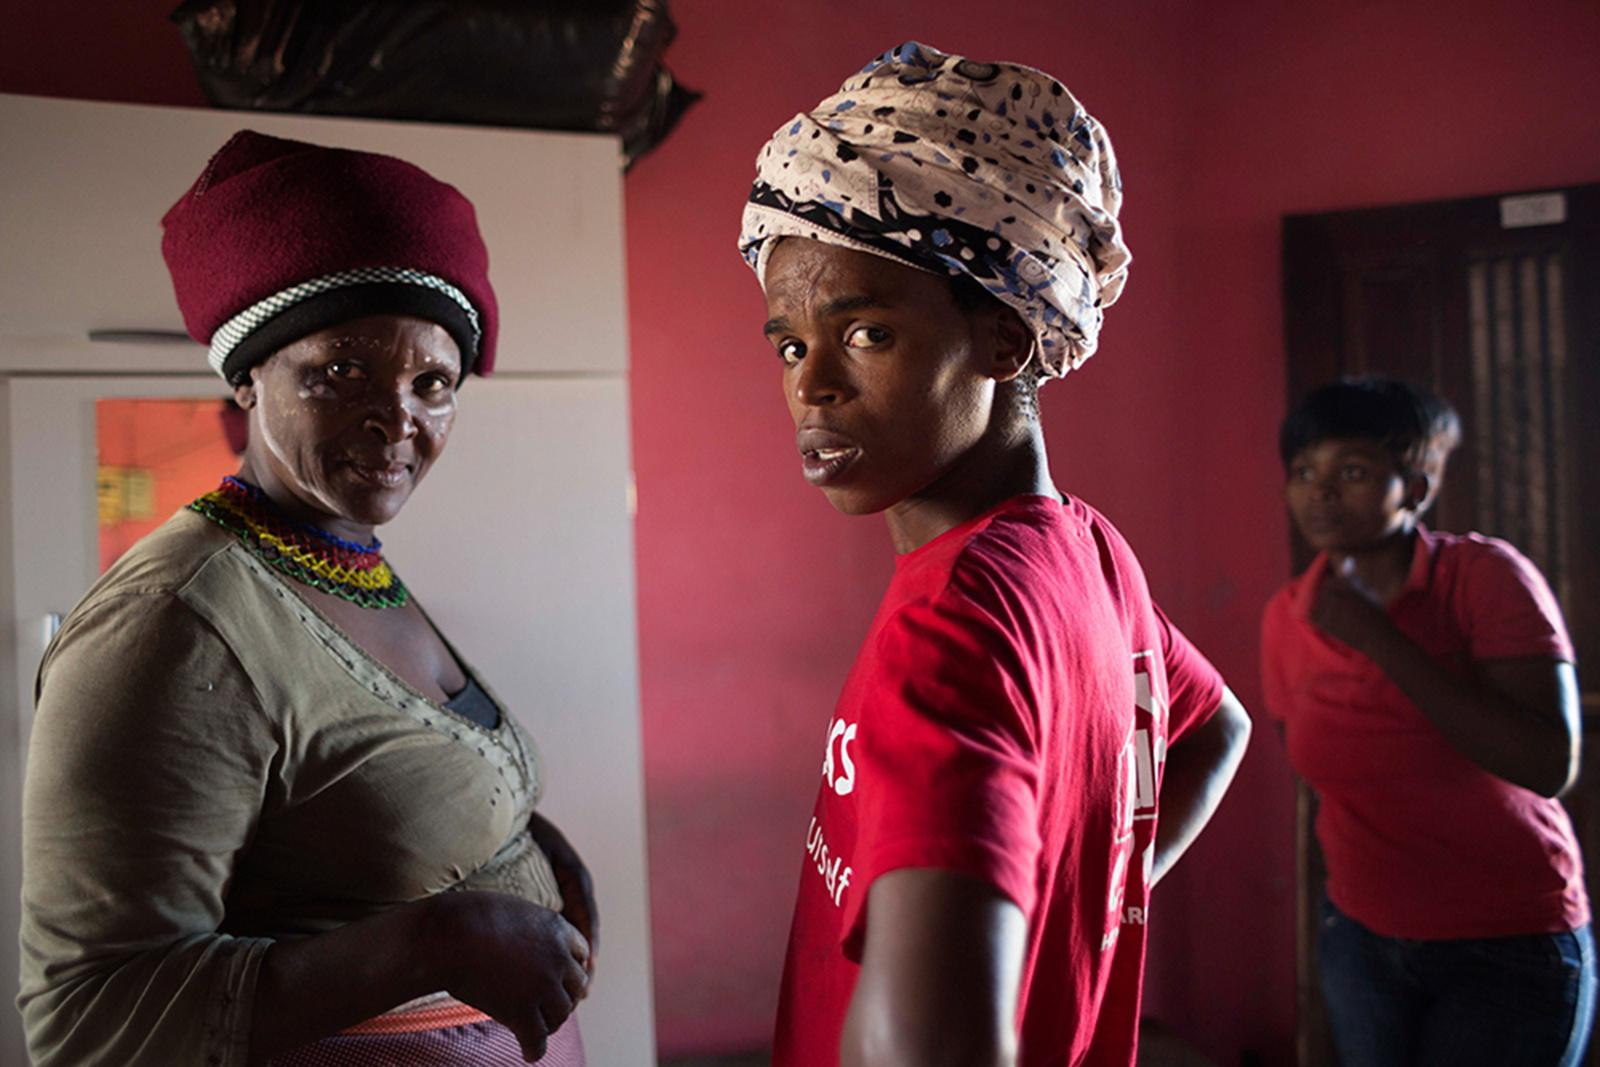 NGXINGXOLO, MOOIPLAAS, EAST LONDON, SOUTH AFRICA - OCTOBER 03, 2014: Transgender woman Lazola Canzibe (C), 24, visits her cousin Nolusapho Ndoyana (L), currently wearing traditional clothing, and her niece Nontombi Ndoyana (R) October 03, 2014 in Ngxingxolo, Mooiplaas, East London, South Africa. Living quite far away in Kwelera, Lazola has the chance to visit them today because she helps with preparations for a traditional ceremony taking place close to her cousin's home within the upcoming days. The ceremony is devoted to a praisal of ancestors on October 04 followed by a celebration on October 05. Rural areas, such as Ngxingxolo, are strongly shaped by traditional practices and gender roles. Identifying as a female, Lazola sticks to the traditional gender role of women whose main duties are cleaning, cooking, fetching water, collecting firewood and looking after the children.